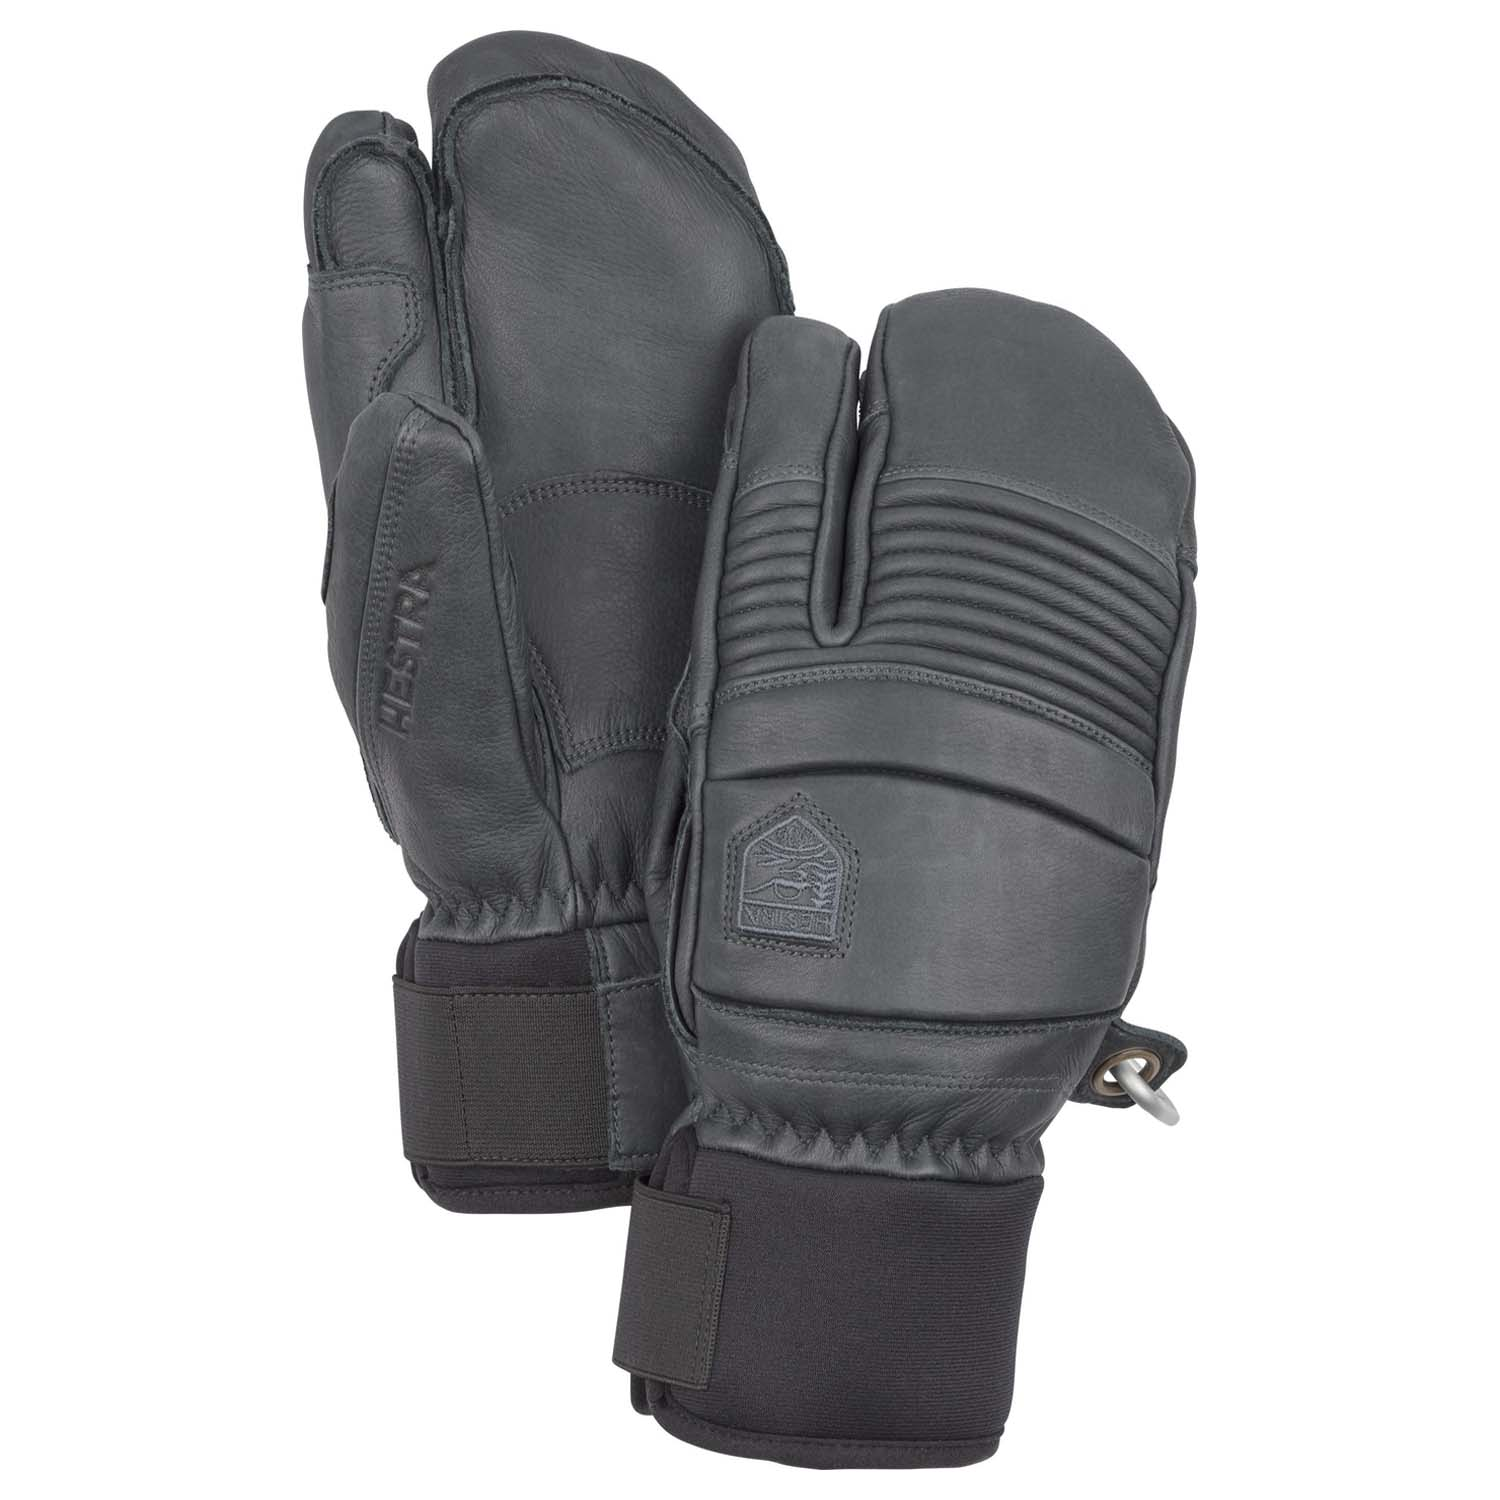 Hestra Leather Fall Line 3-Finger Glove Grey 2020